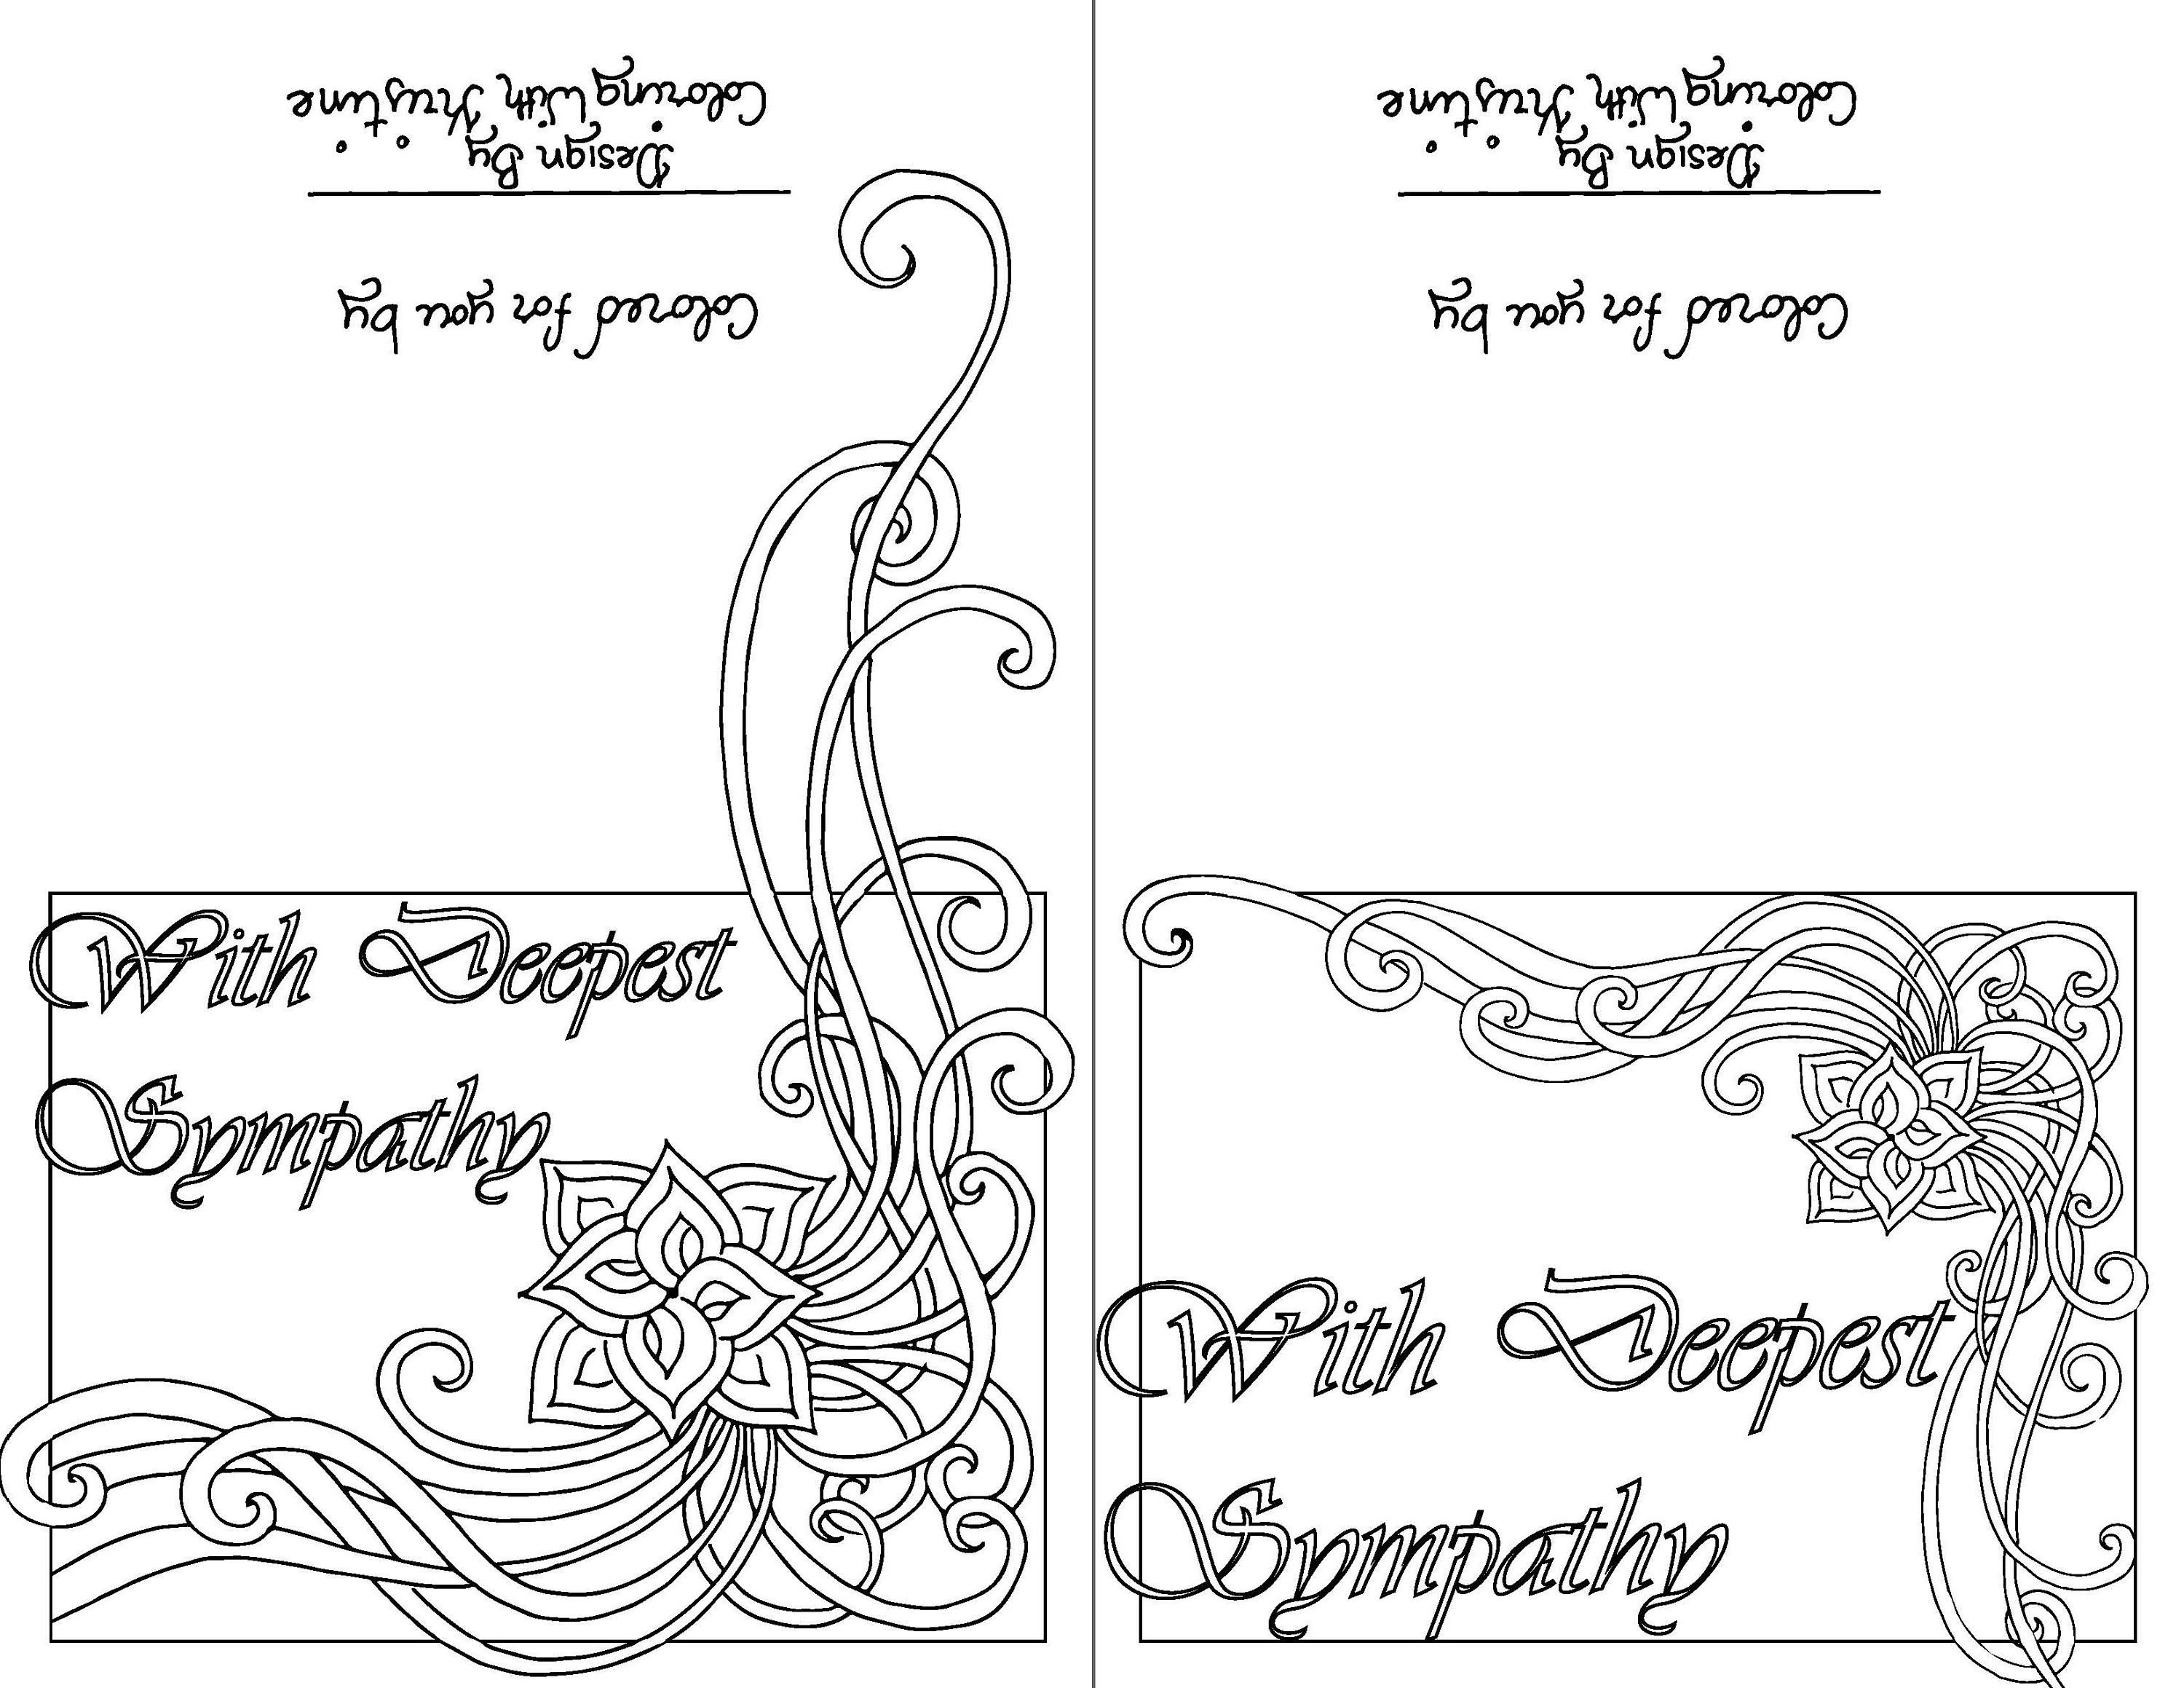 Sympathy card coloring pages ~ Color Your Own Sympathy Card-Sets of Ten-Instant Download ...